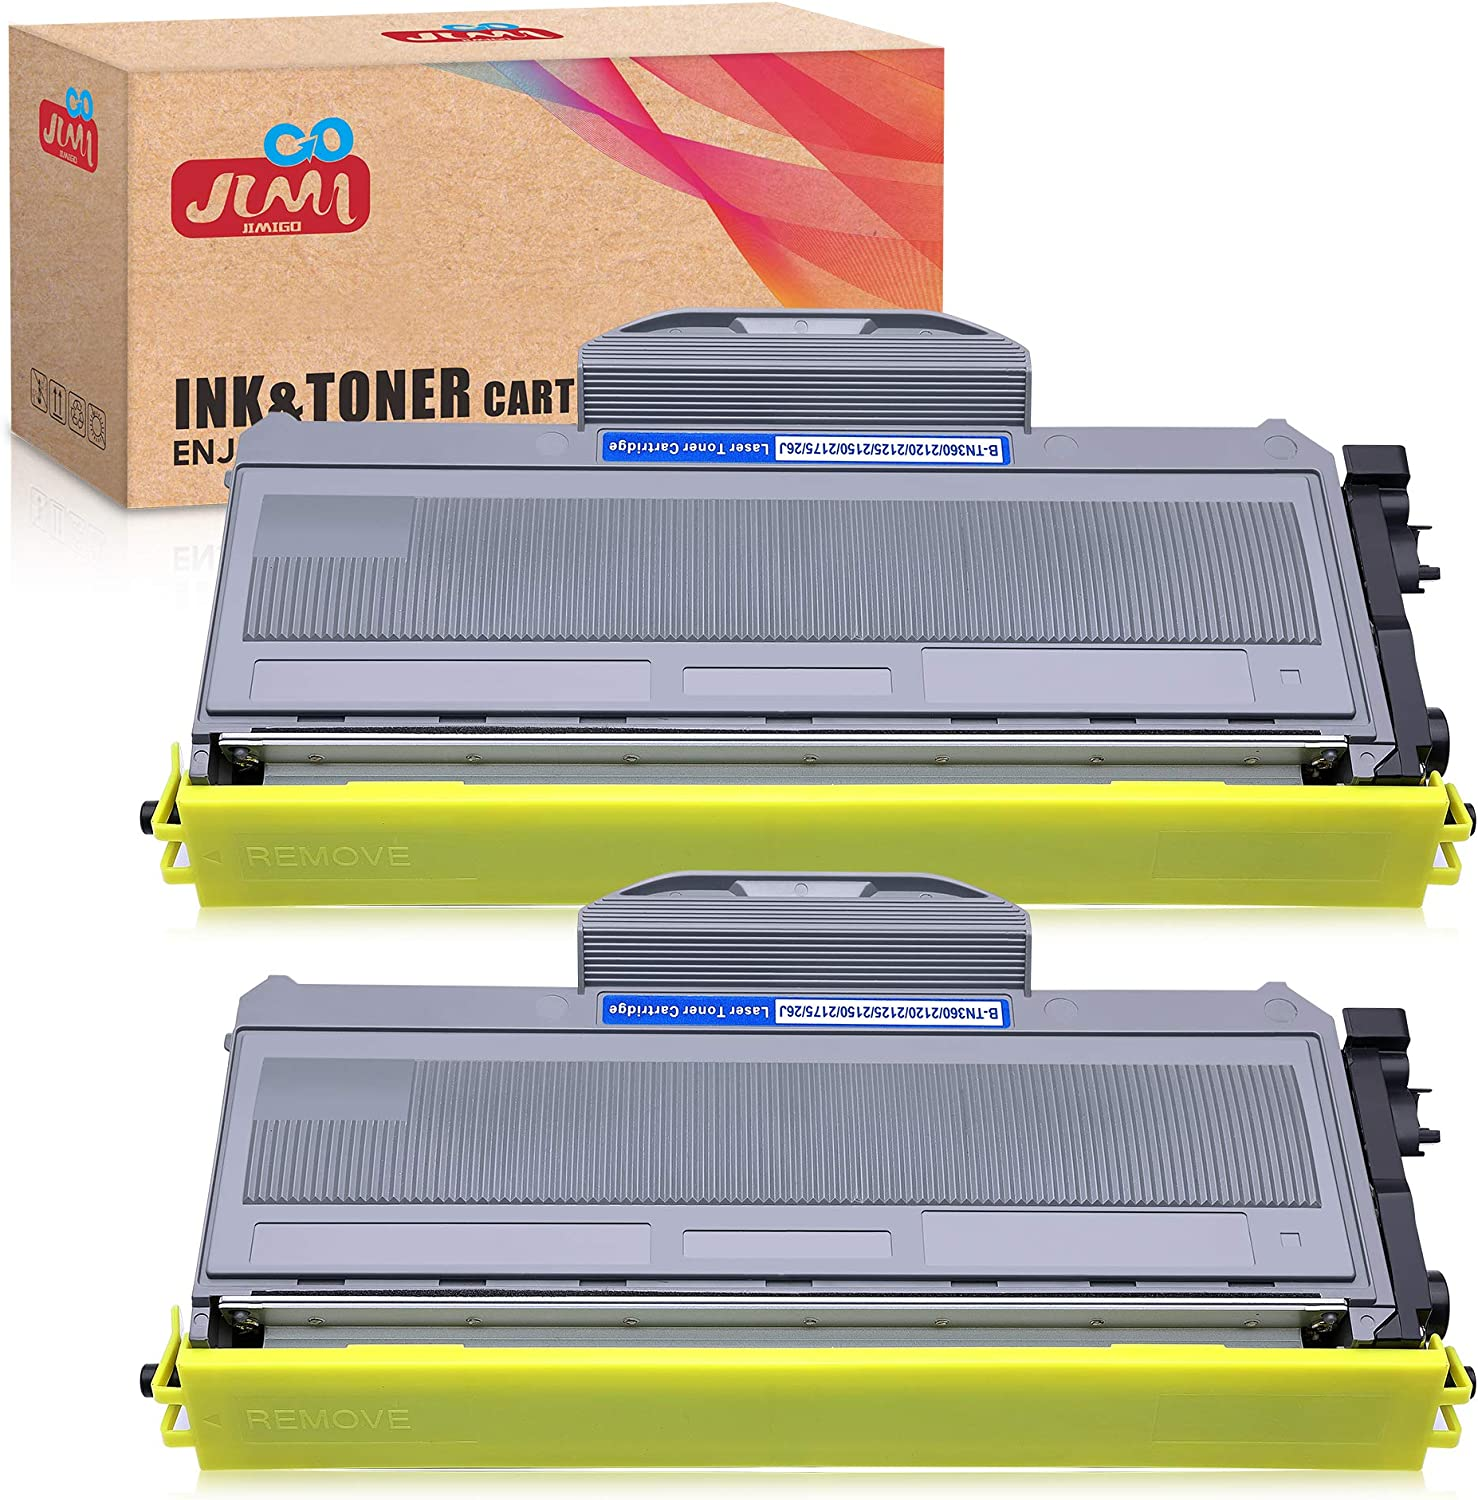 High Yield JinHan TN-360 TN-330 Toner Cartridge Compatible for Brother TN-360 TN360 TN-330 TN330 HL-2140 DCP-7030 DCP-7040 2 Black MFC-7440N Work with Brother HL-2170W MFC-7340 MFC-7840W